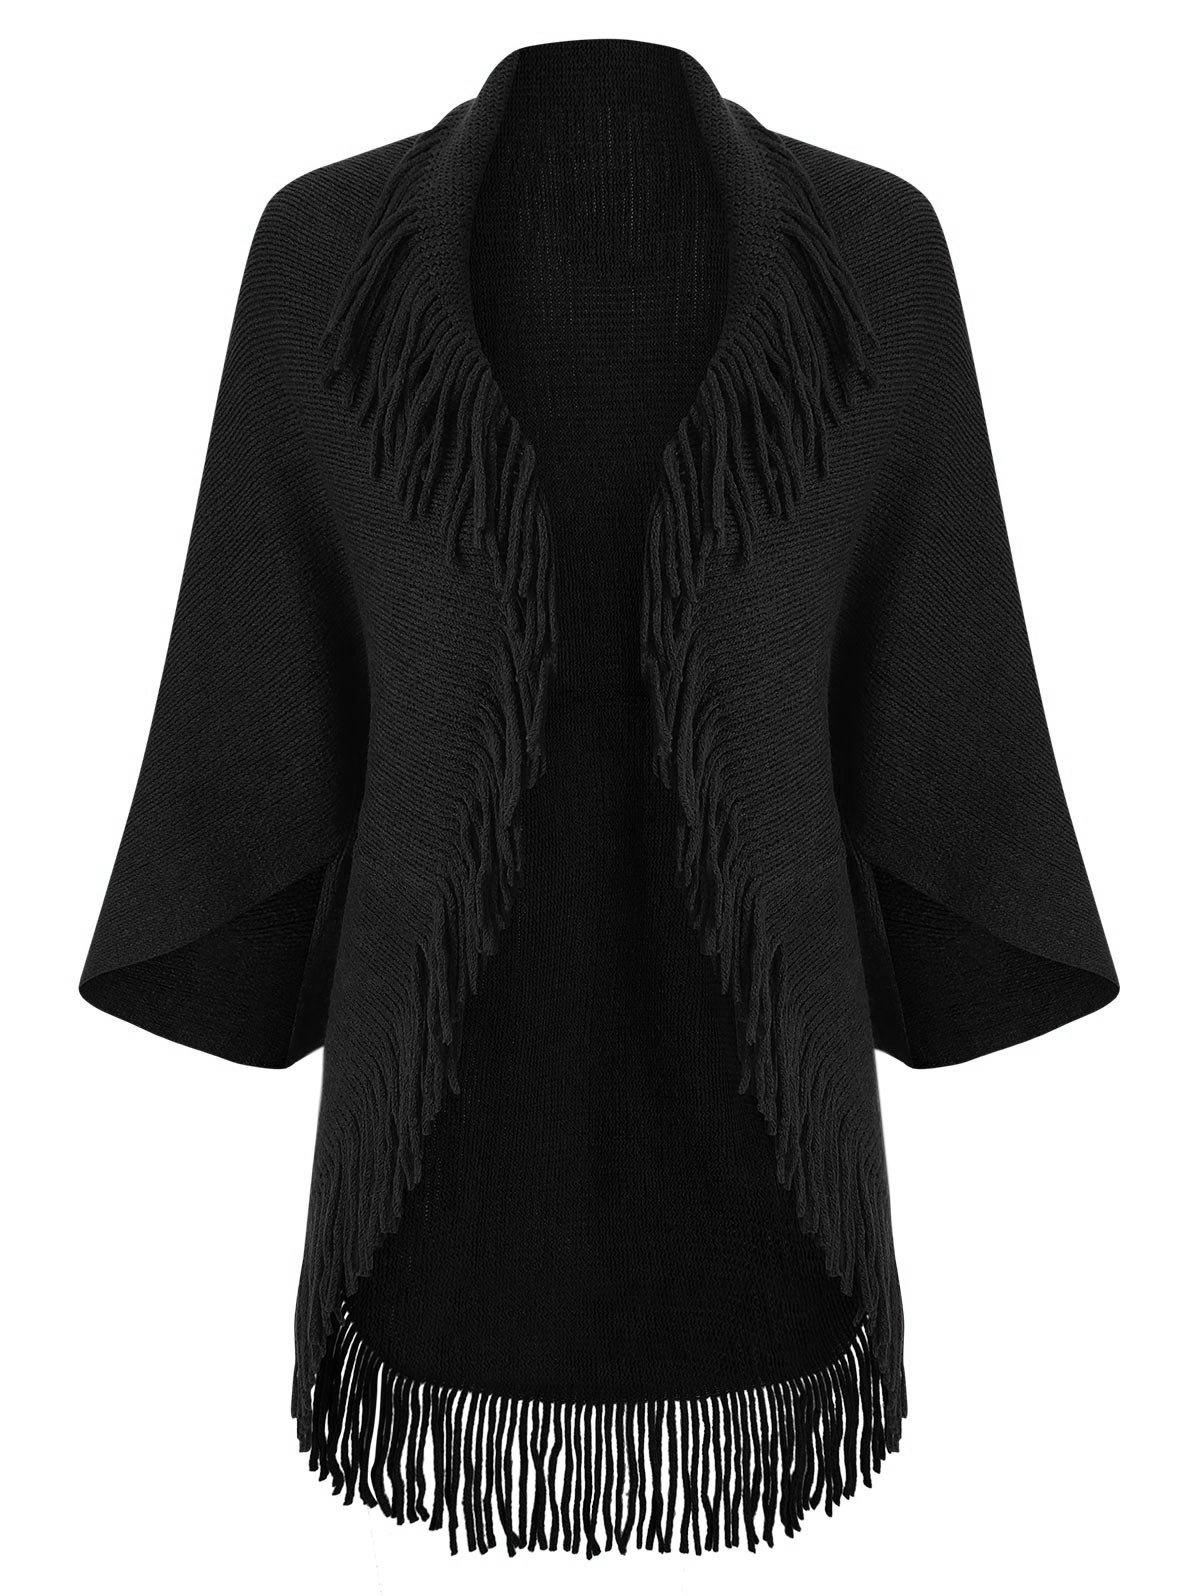 Fringed Trim Open Front Cape Cardigan - BLACK ONE SIZE